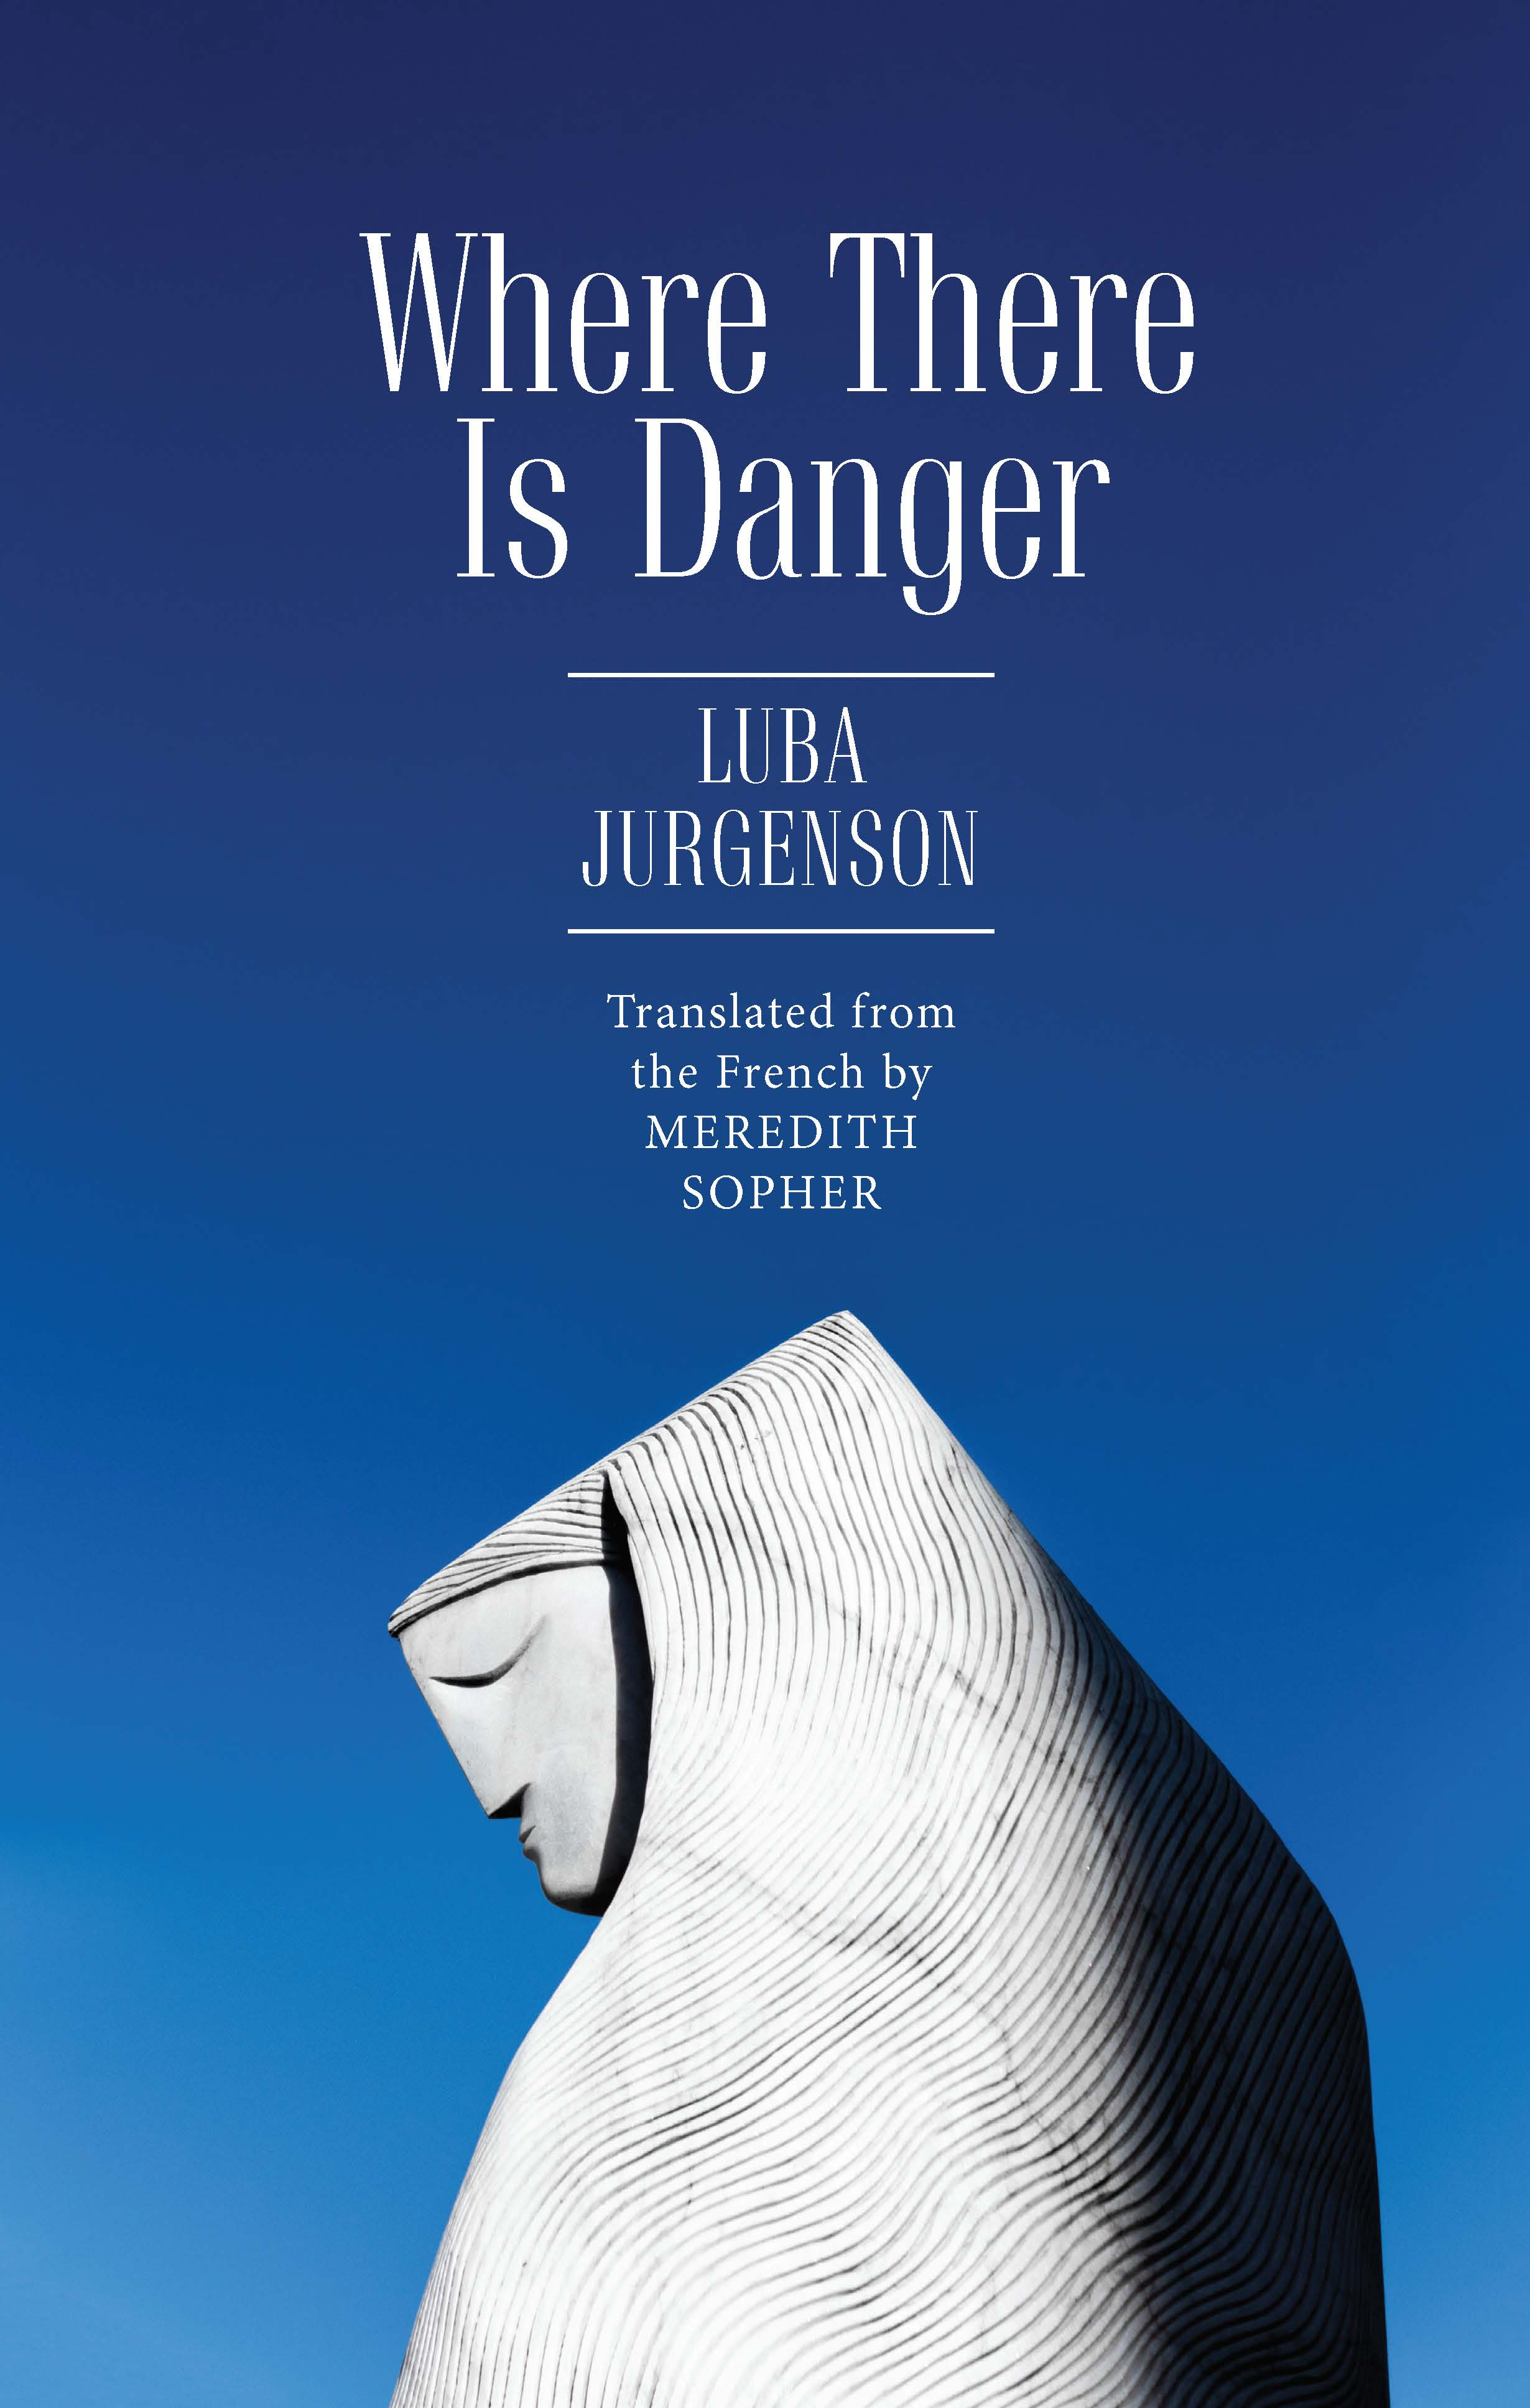 Where There Is Danger        by Luba Jurgenson, translated from the French by Meredith Sopher